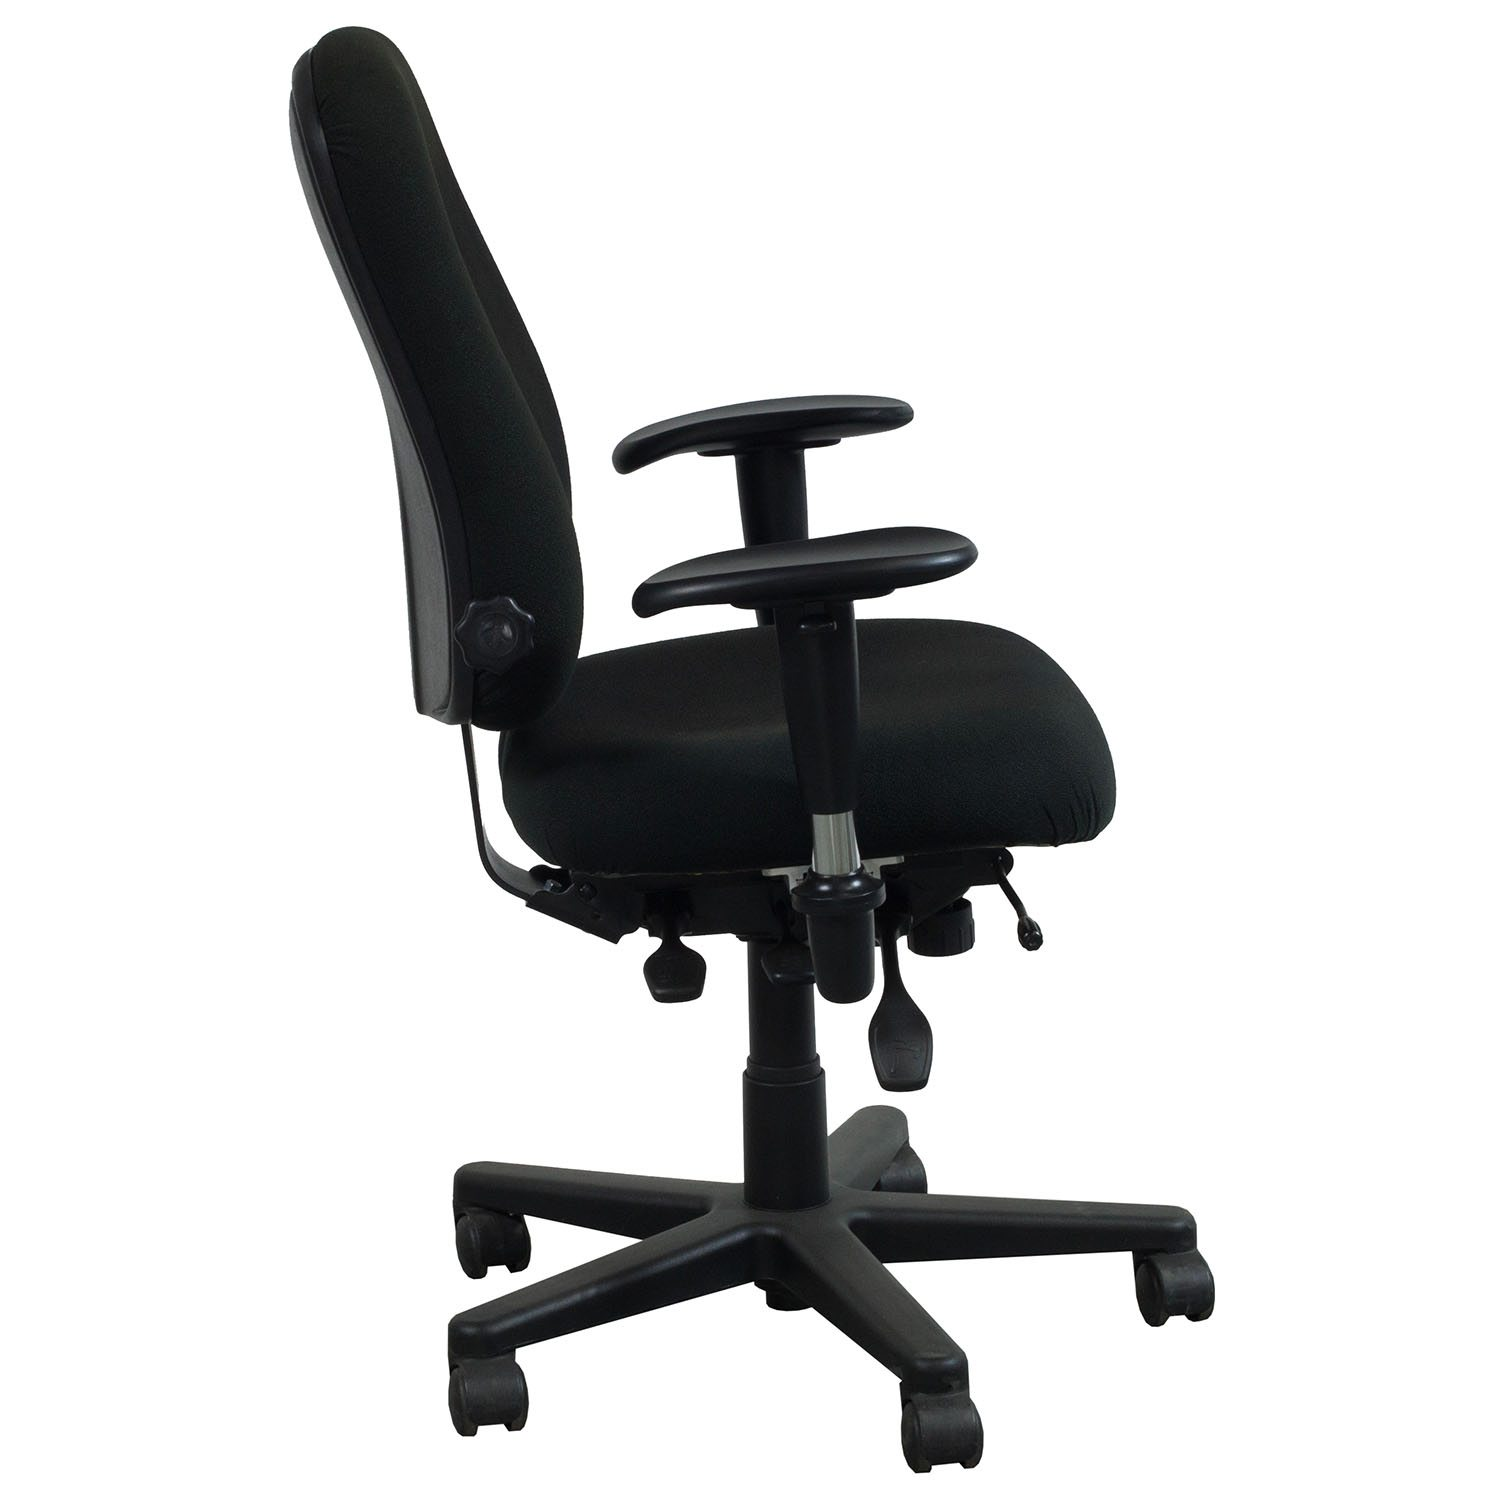 swivel chair em portugues barber hydraulic fluid office master pt78 used task black national